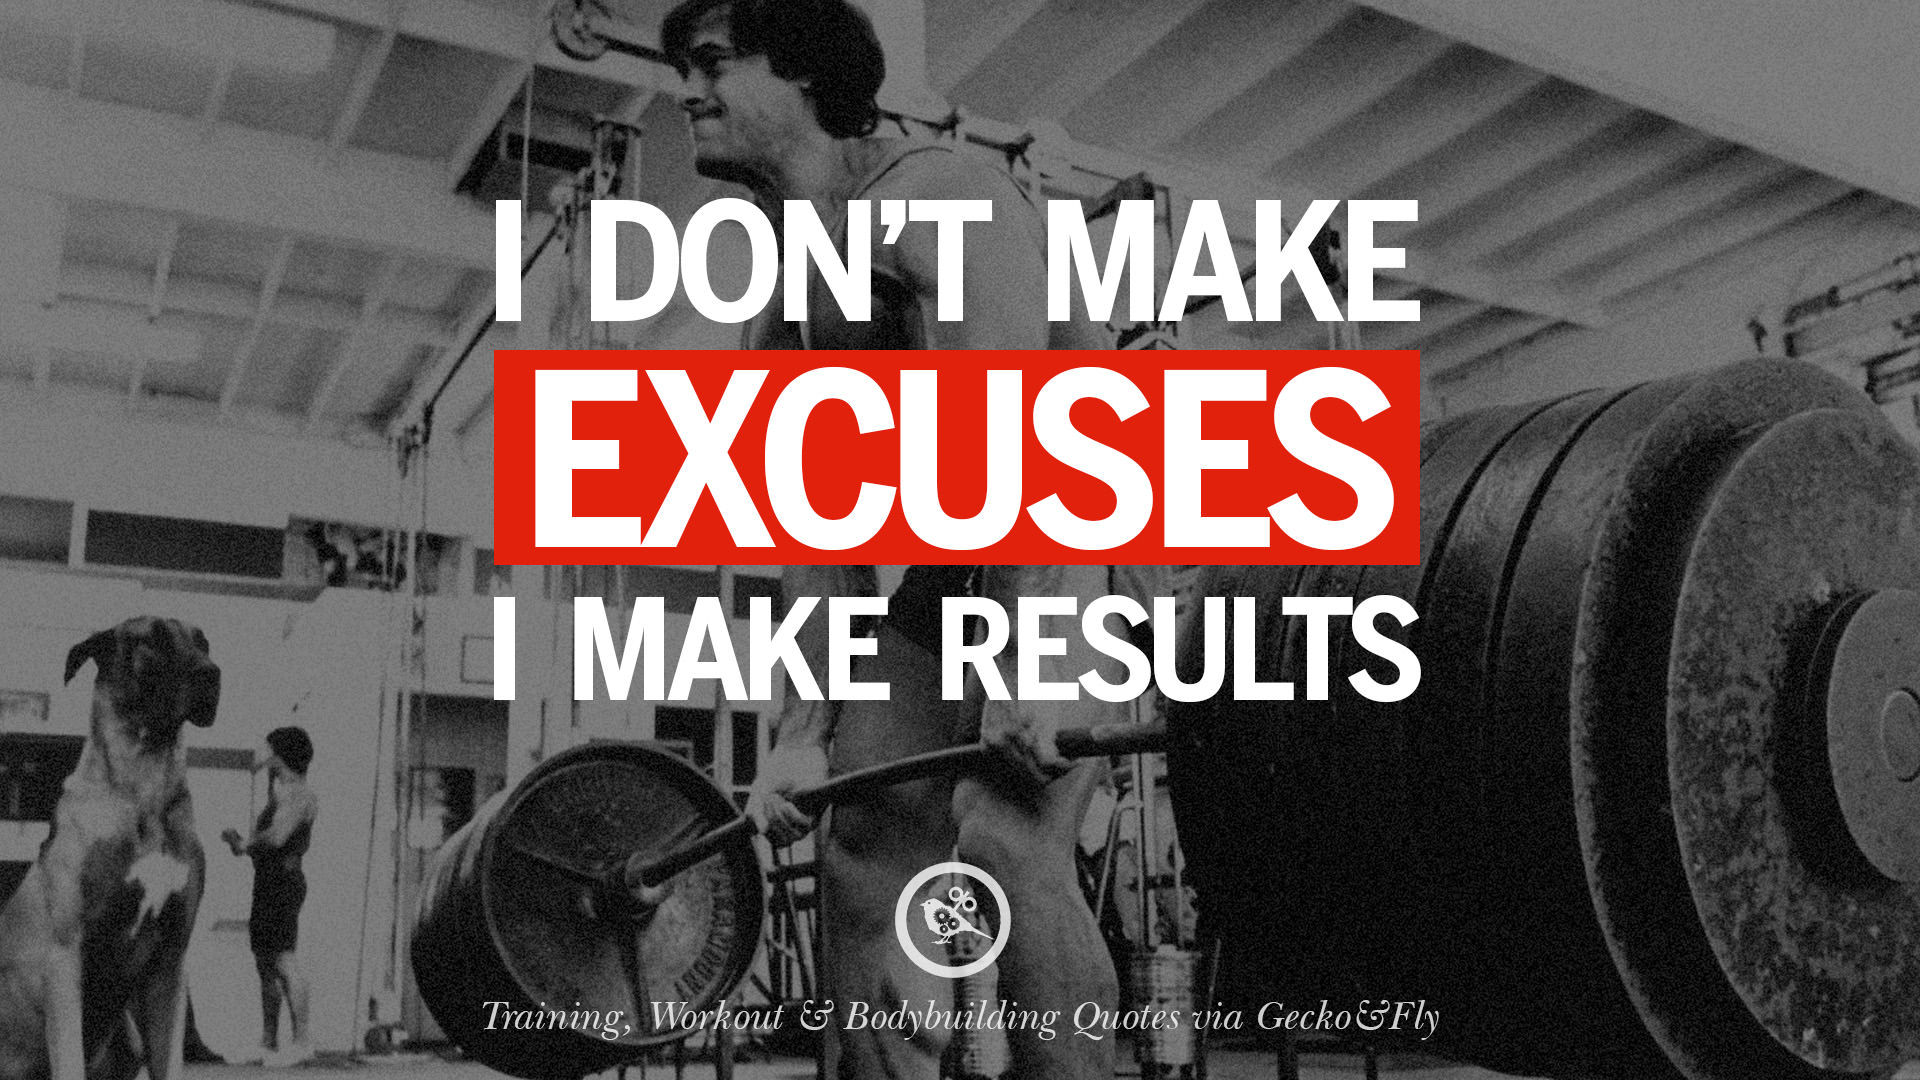 Images Of Inspiring Quotes Wallpaper 10 Muscle Boosting Quotes For Workout Amp Bodybuilding Gains